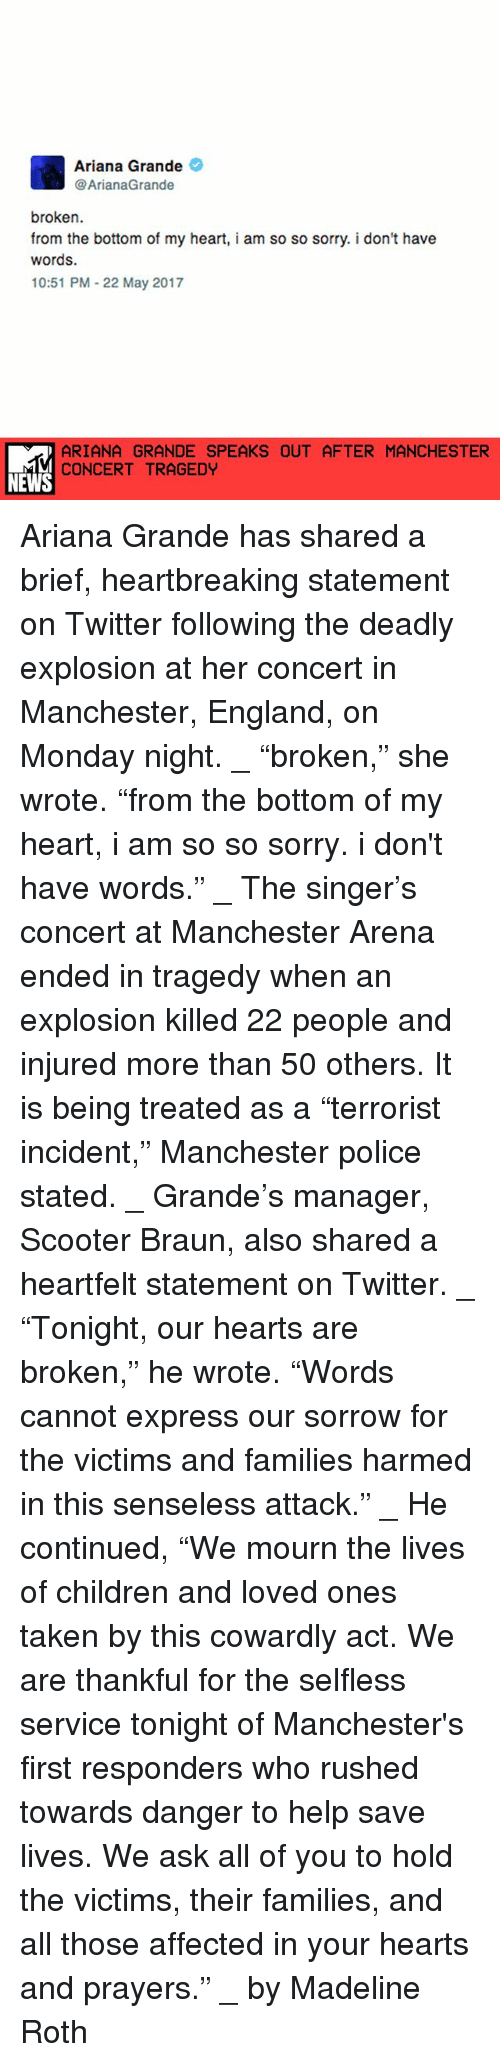 """Heartfeltly: Ariana Grande  @ArianaGrande  broken.  from the bottom of my heart, i am so so sorry. i don't have  words.  10:51 PM 22 May 2017  ARIANA GRANDE SPEAKS OUT AFTER MANCHESTER  CONCERT TRAGEDY  NEWS Ariana Grande has shared a brief, heartbreaking statement on Twitter following the deadly explosion at her concert in Manchester, England, on Monday night. _ """"broken,"""" she wrote. """"from the bottom of my heart, i am so so sorry. i don't have words."""" _ The singer's concert at Manchester Arena ended in tragedy when an explosion killed 22 people and injured more than 50 others. It is being treated as a """"terrorist incident,"""" Manchester police stated. _ Grande's manager, Scooter Braun, also shared a heartfelt statement on Twitter. _ """"Tonight, our hearts are broken,"""" he wrote. """"Words cannot express our sorrow for the victims and families harmed in this senseless attack."""" _ He continued, """"We mourn the lives of children and loved ones taken by this cowardly act. We are thankful for the selfless service tonight of Manchester's first responders who rushed towards danger to help save lives. We ask all of you to hold the victims, their families, and all those affected in your hearts and prayers."""" _ by Madeline Roth"""